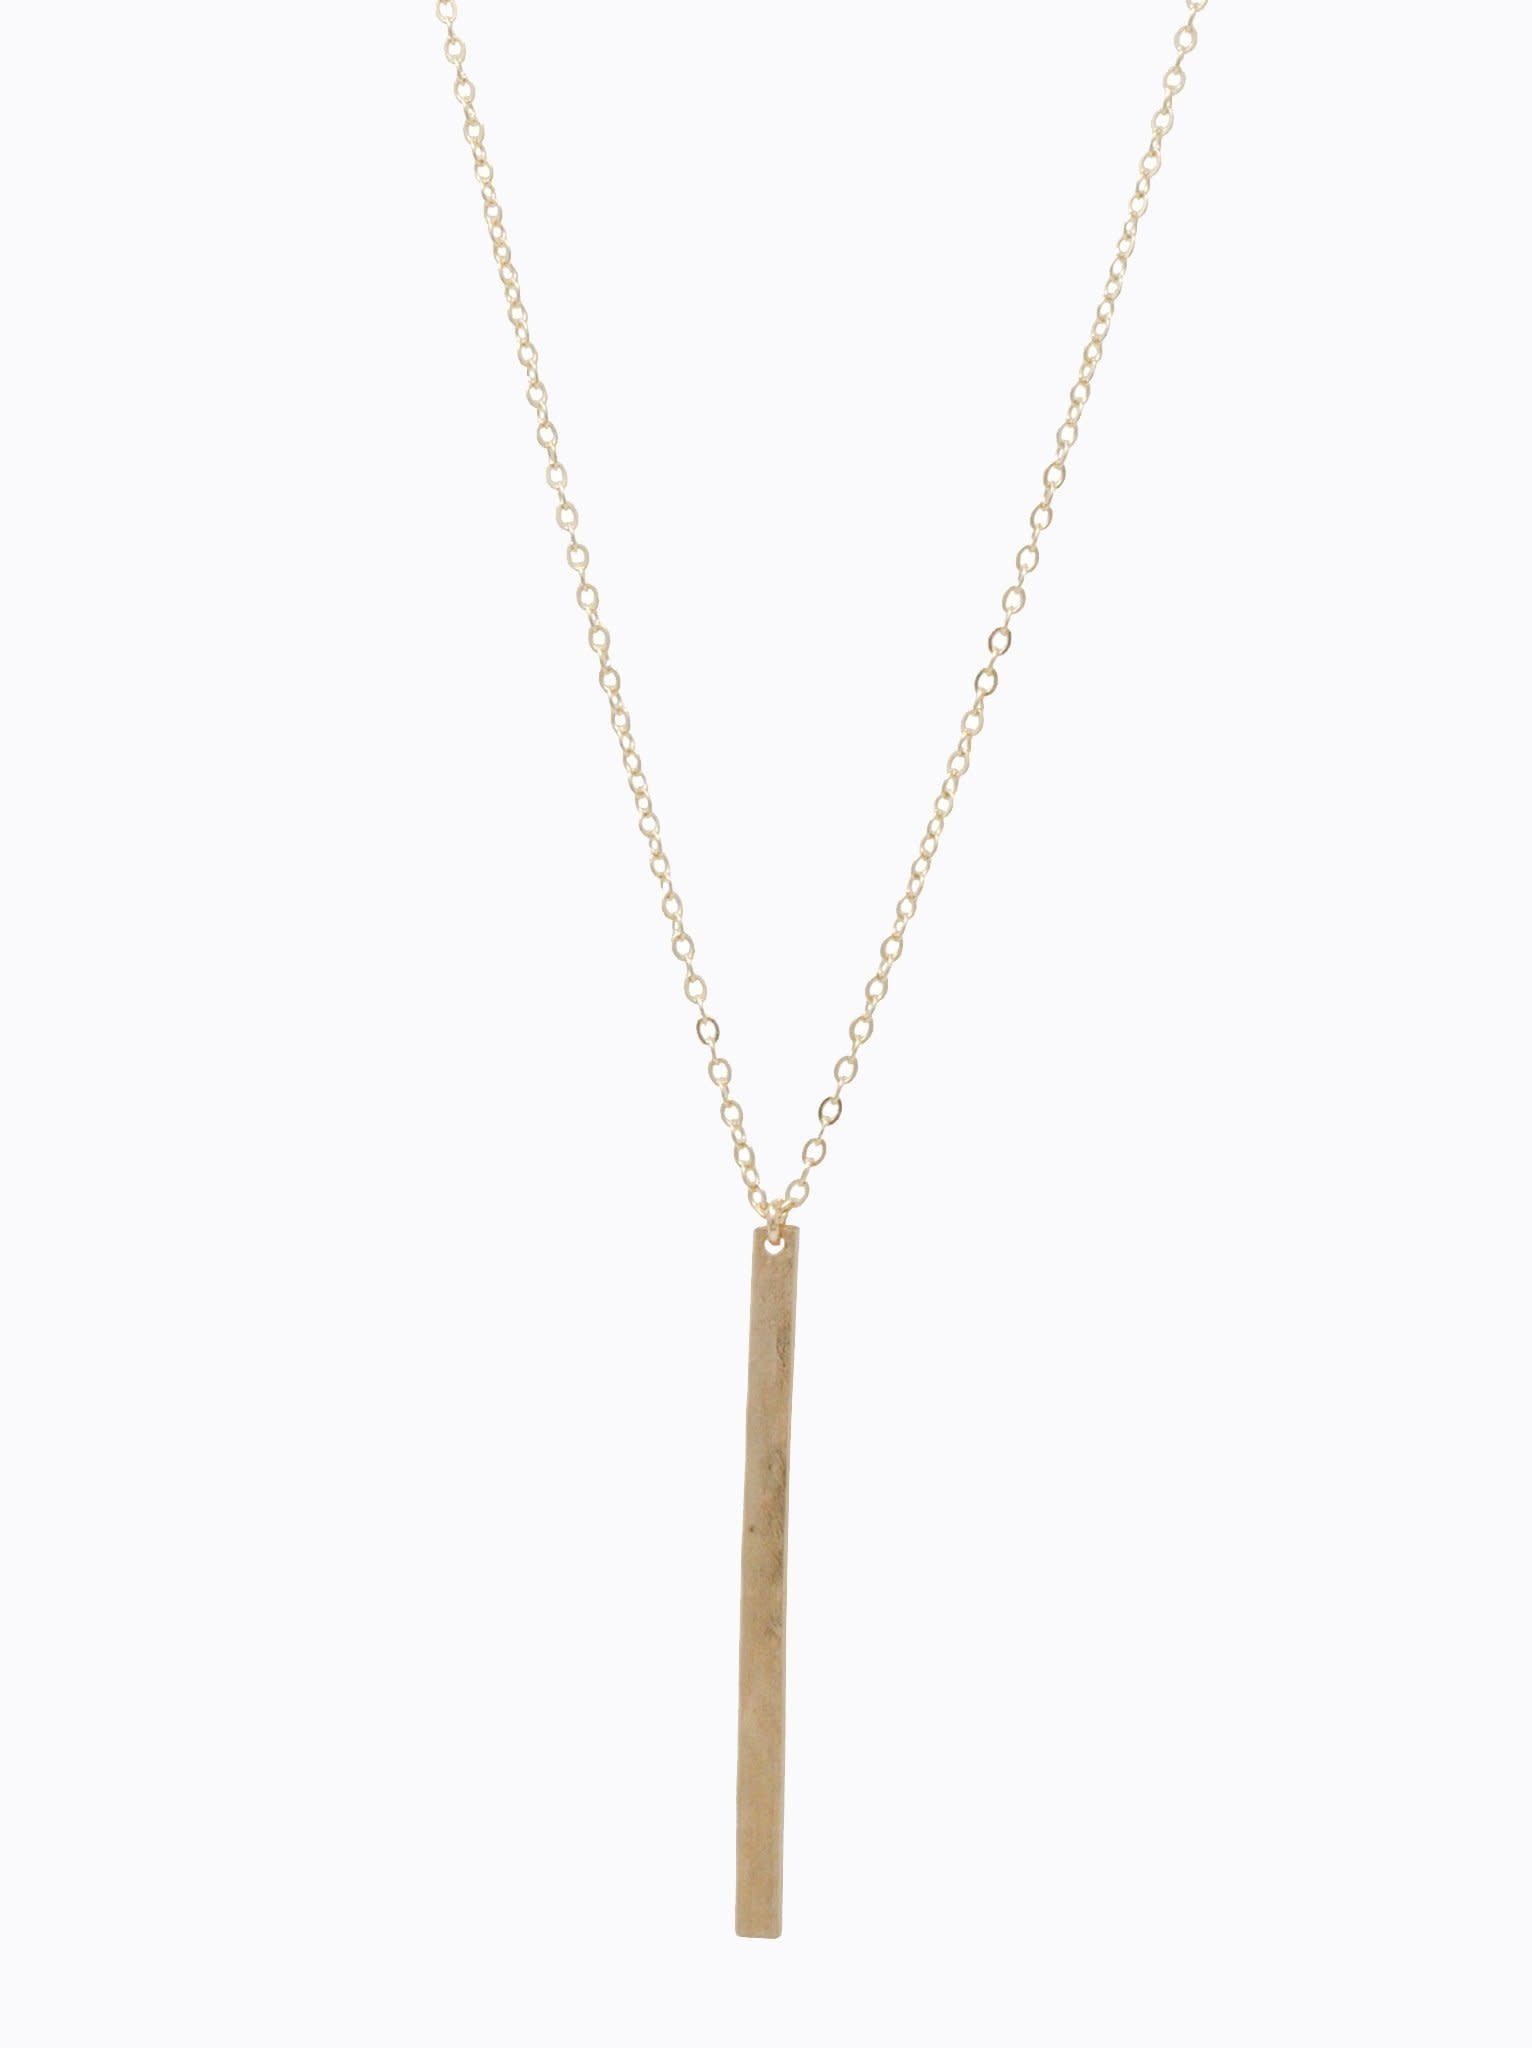 ABLE Gold Fin Necklace